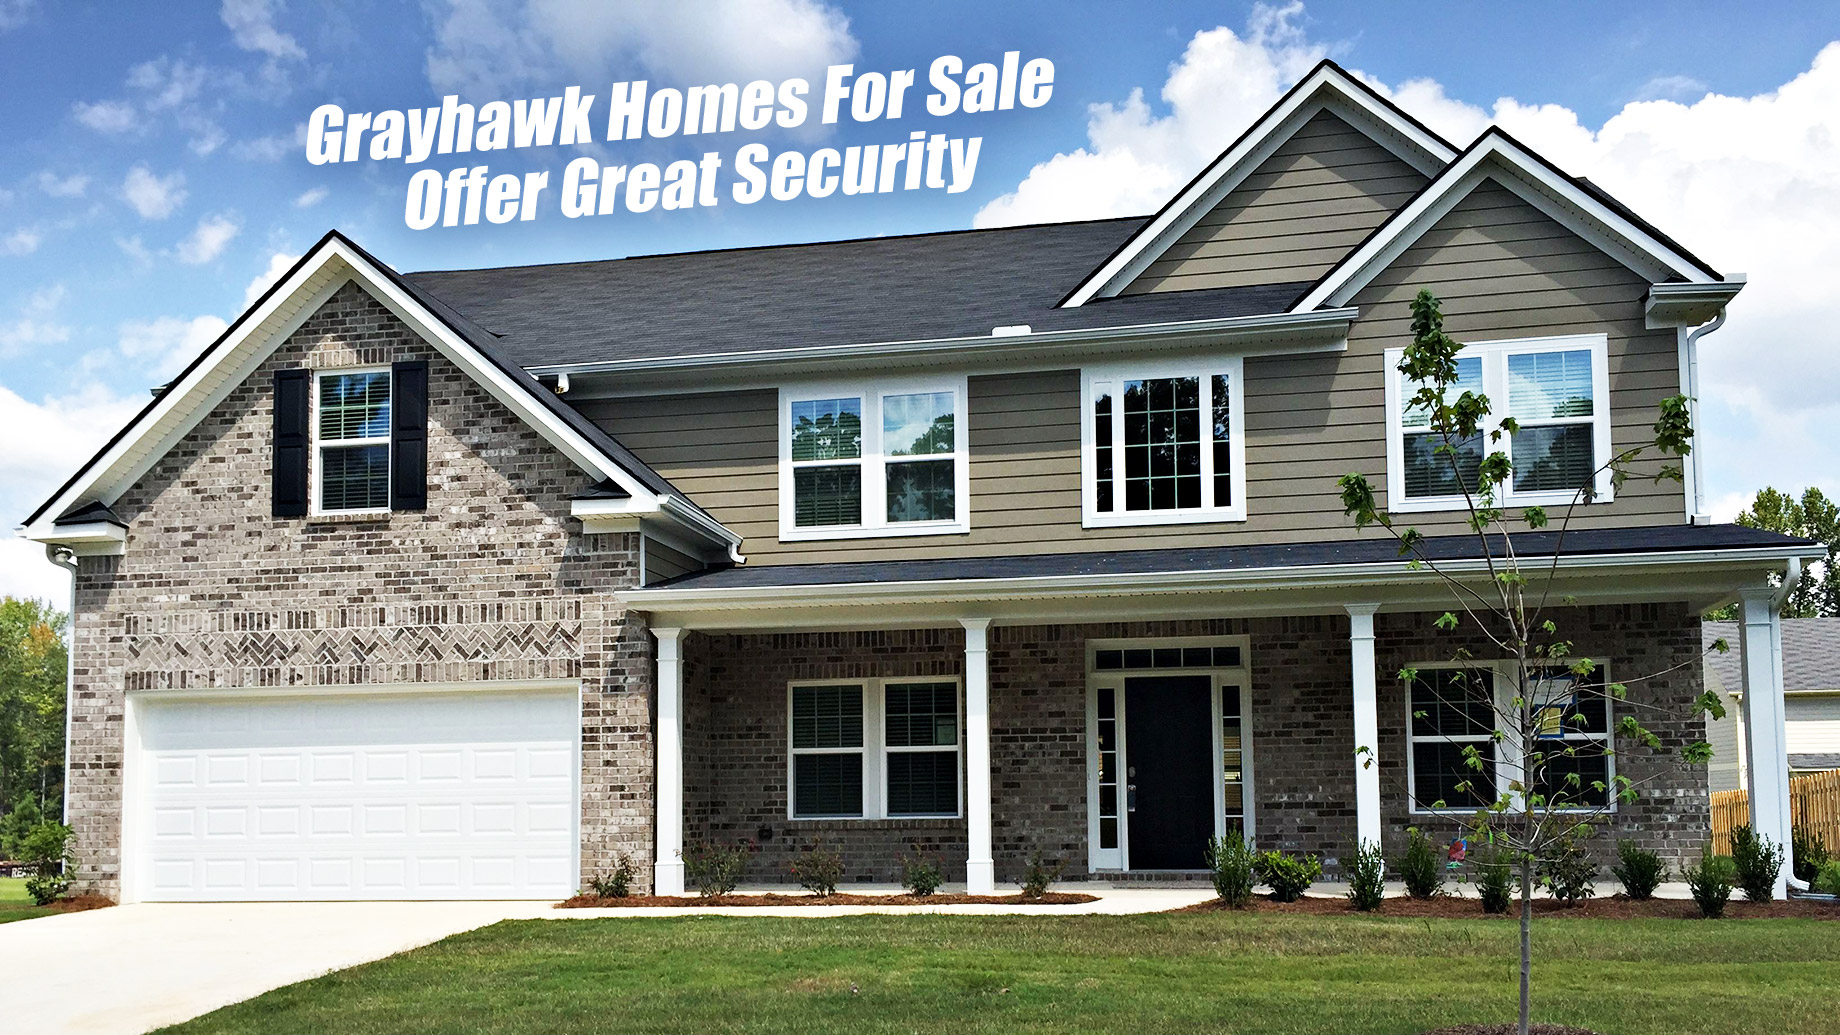 Grayhawk Homes For Sale Offer Great Security